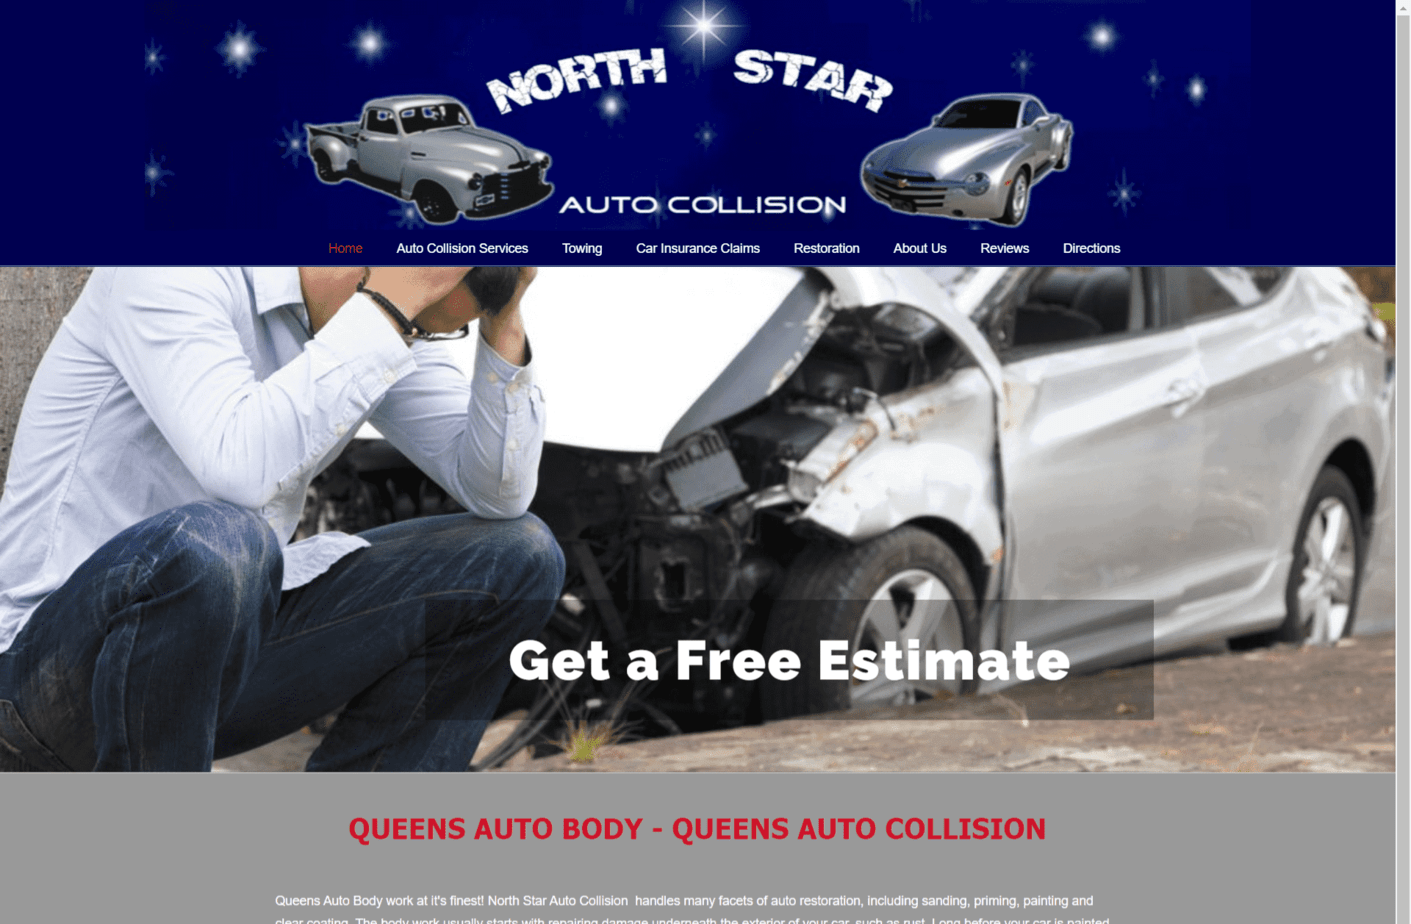 Queens Auto Body - Design by iDesignYours